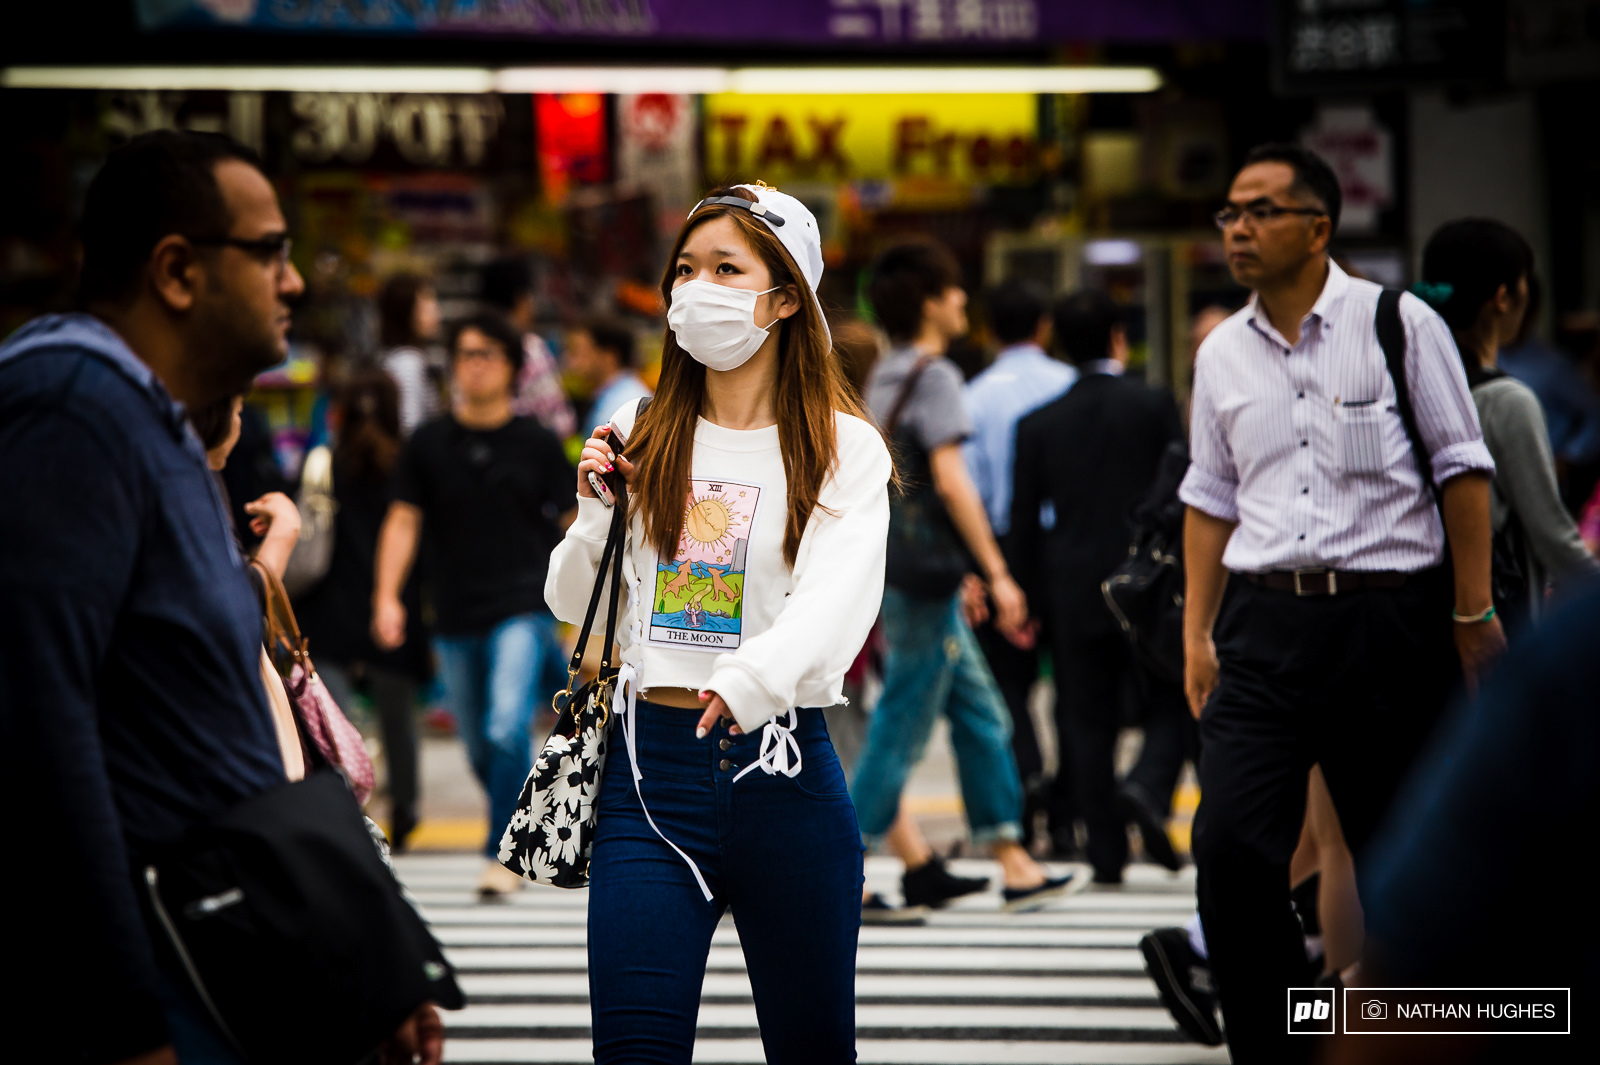 Face masks are the norm in Japan worn for hygiene as well as pollution.